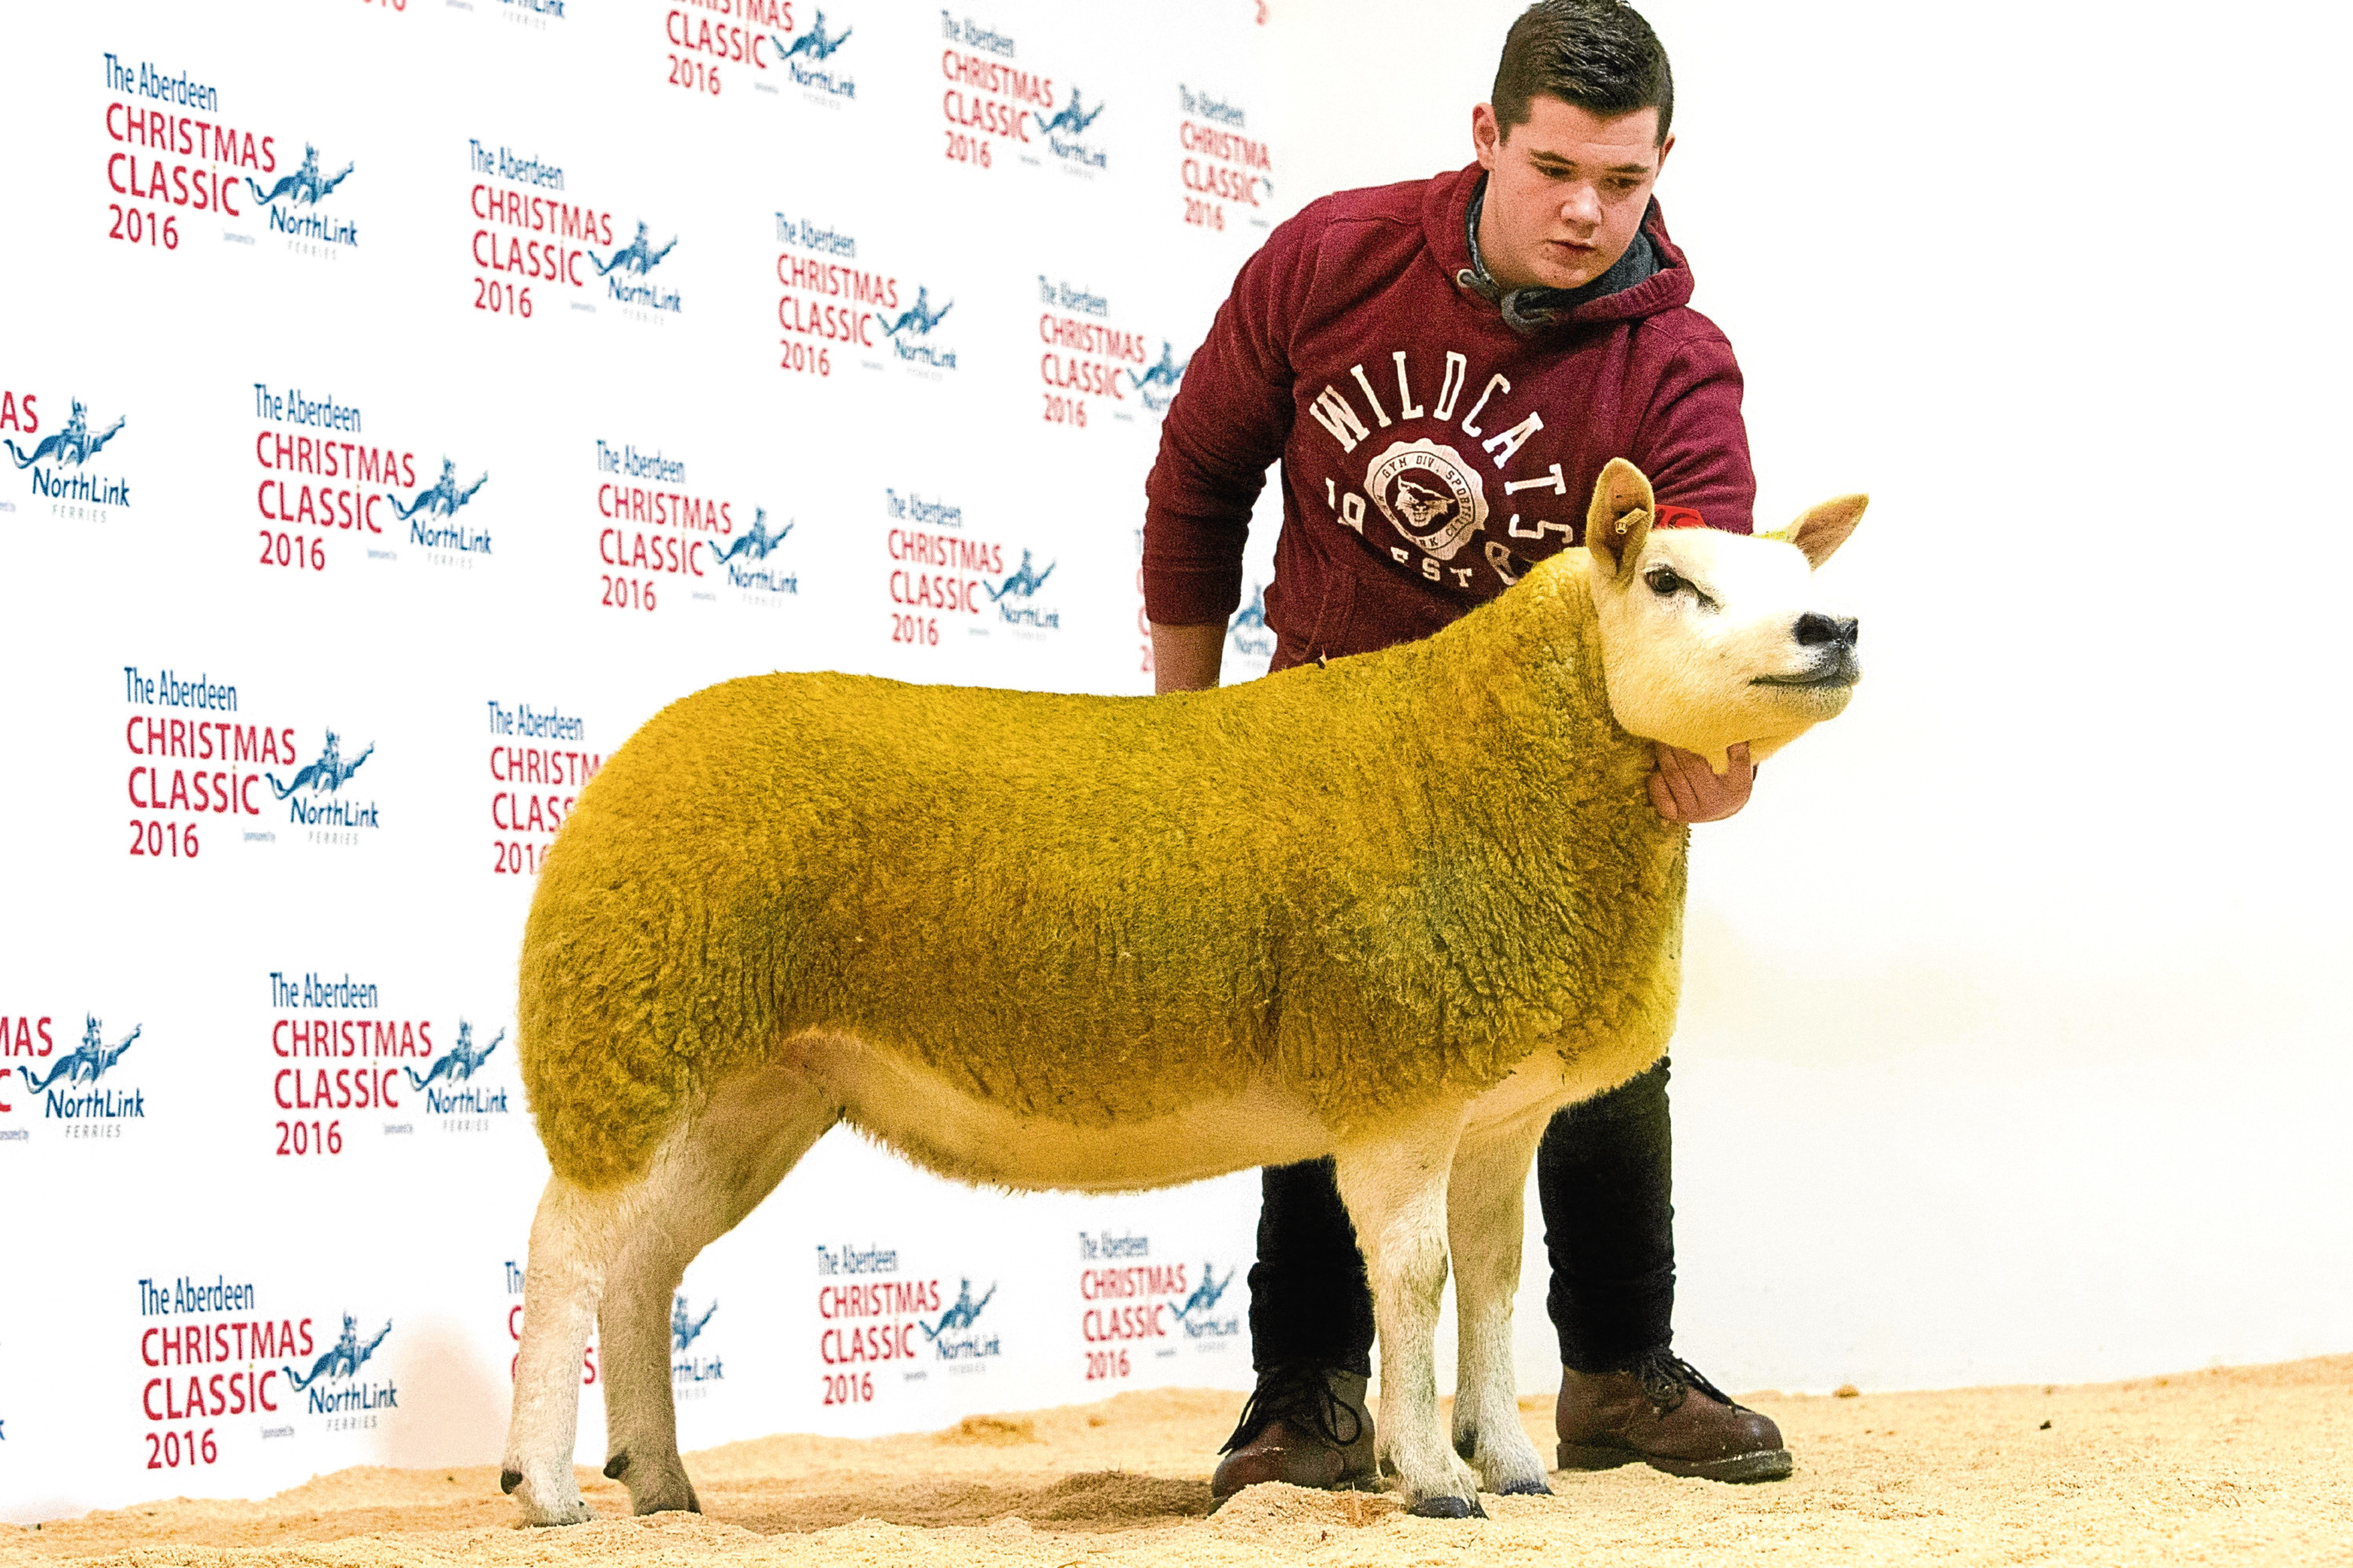 Last year's sheep sale topped at 4,200gn for a Texel from Robbie Wilson's Milnbank flock